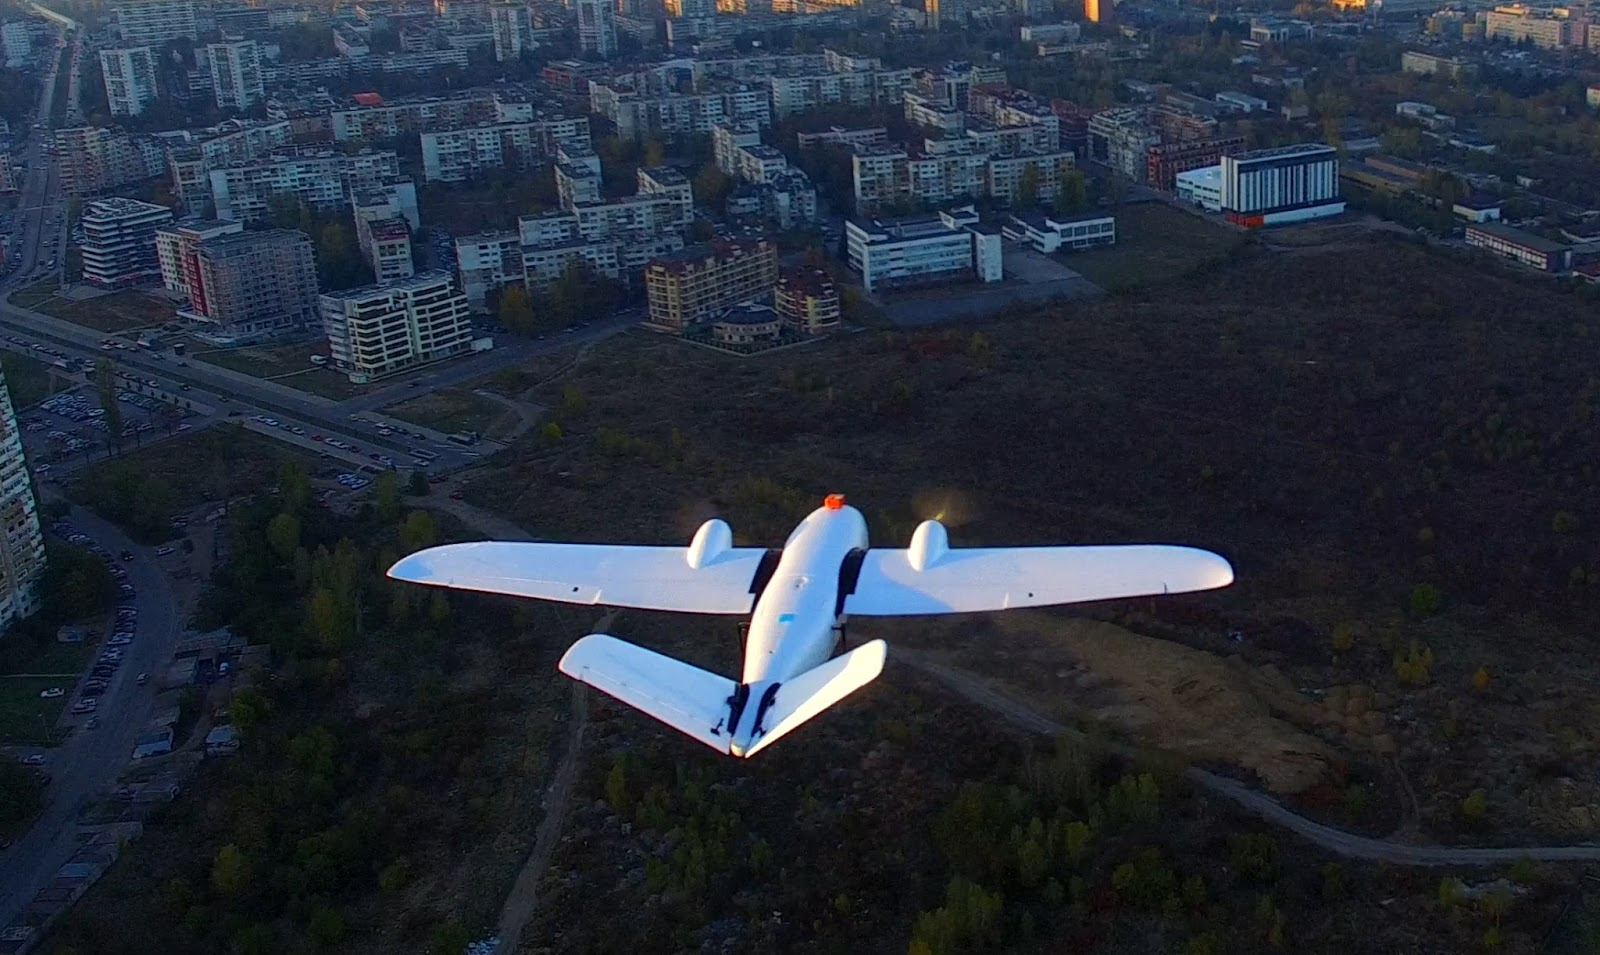 Believer 1960mm Professional Mapping / FPV Plane - best designed